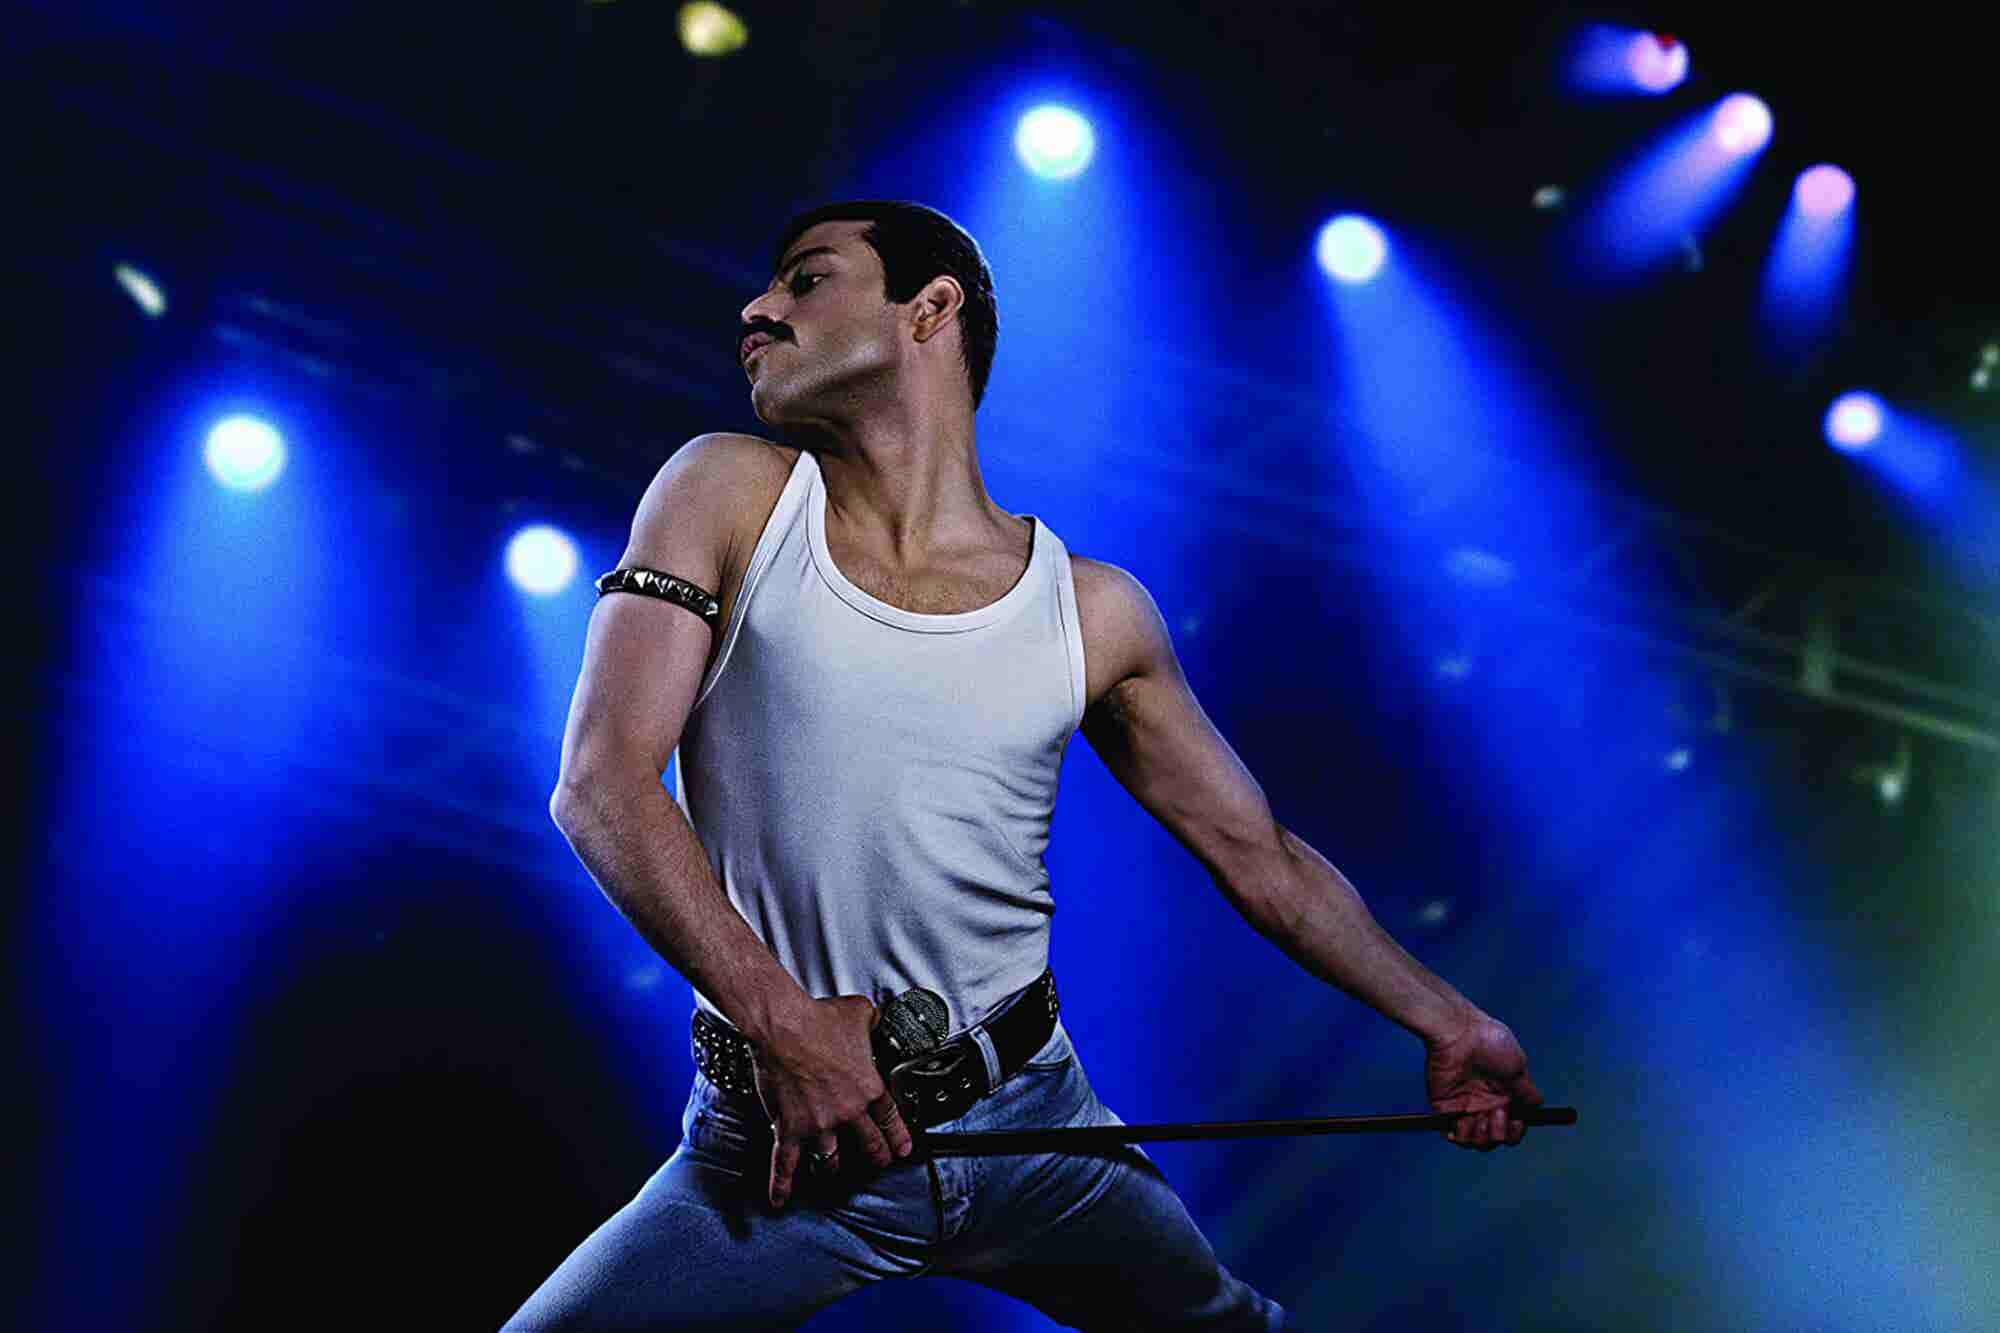 Channel Your Inner Freddie Mercury With These 8 Tips for Entrepreneurs From 'Bohemian Rhapsody'